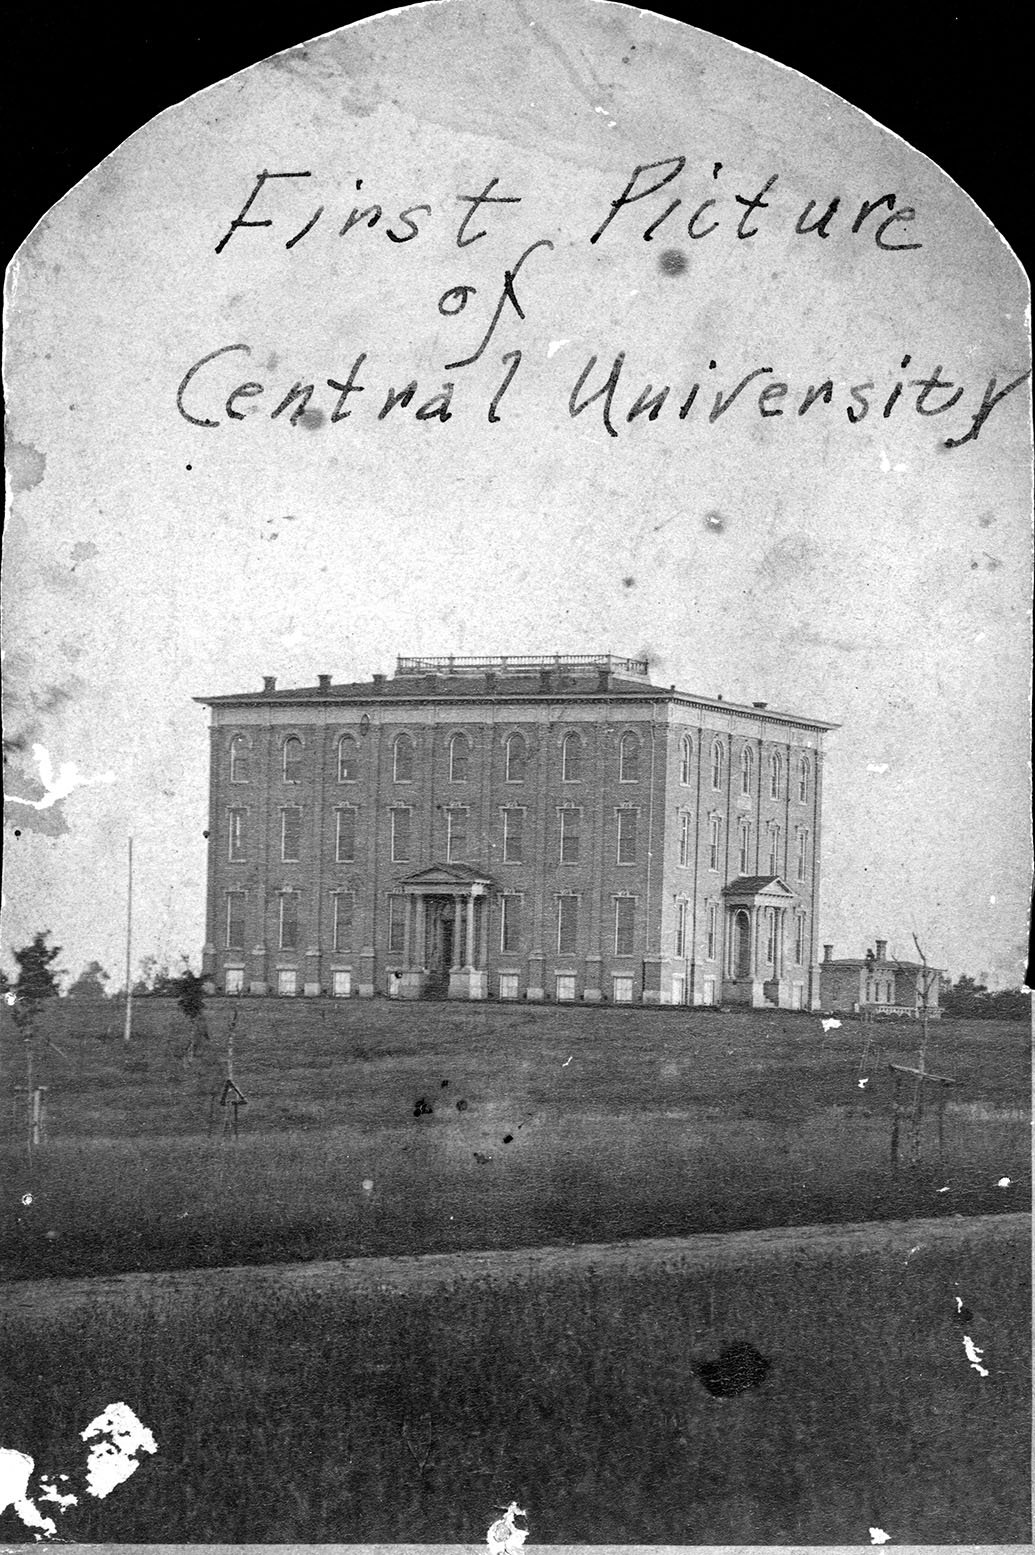 Exterior of University Building, Ellendale in the background, first picture of Central University. EKU Photo Collection.